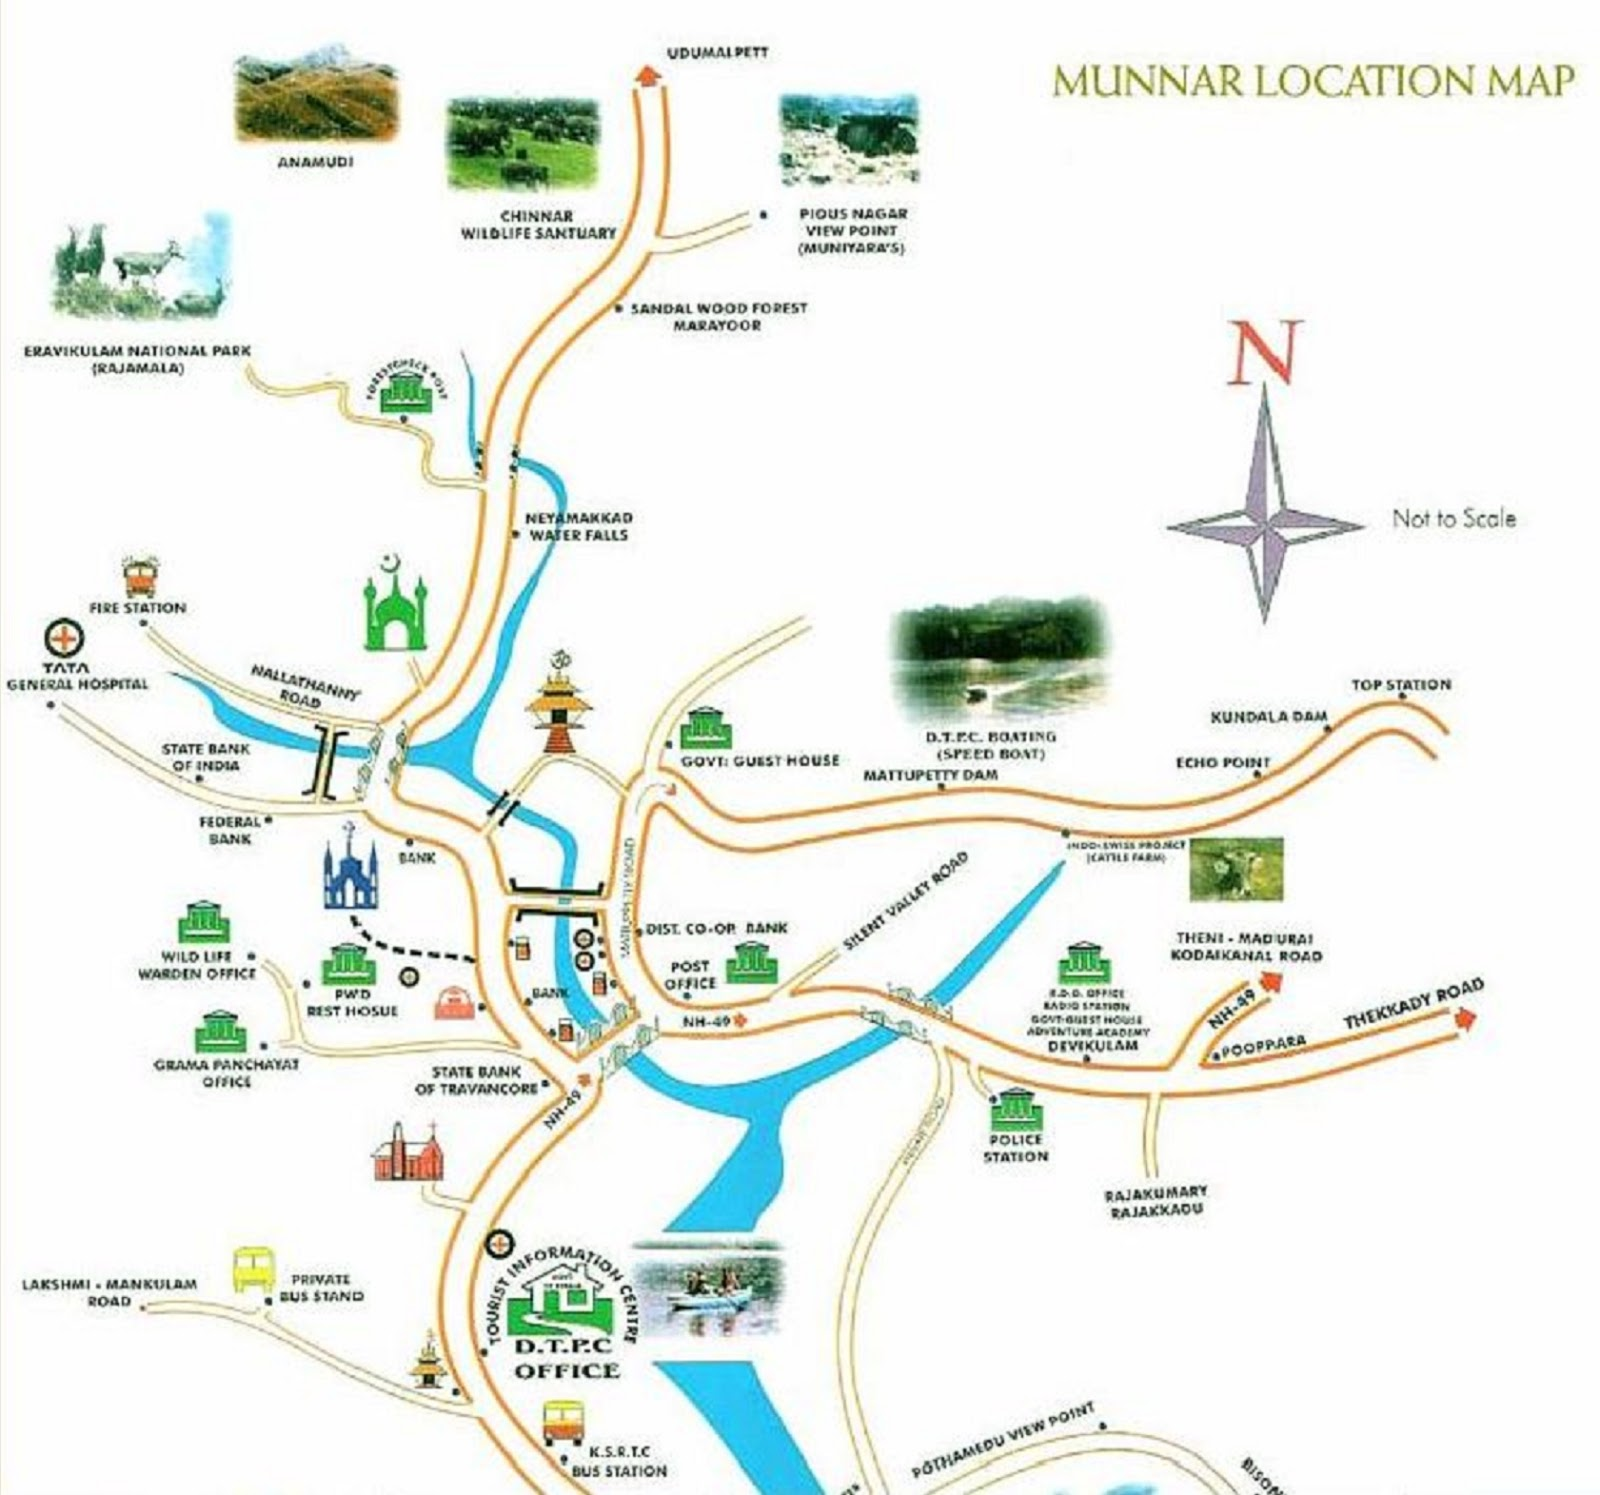 tourist map munnar ooty attractions tourism india hill station trip unknown around